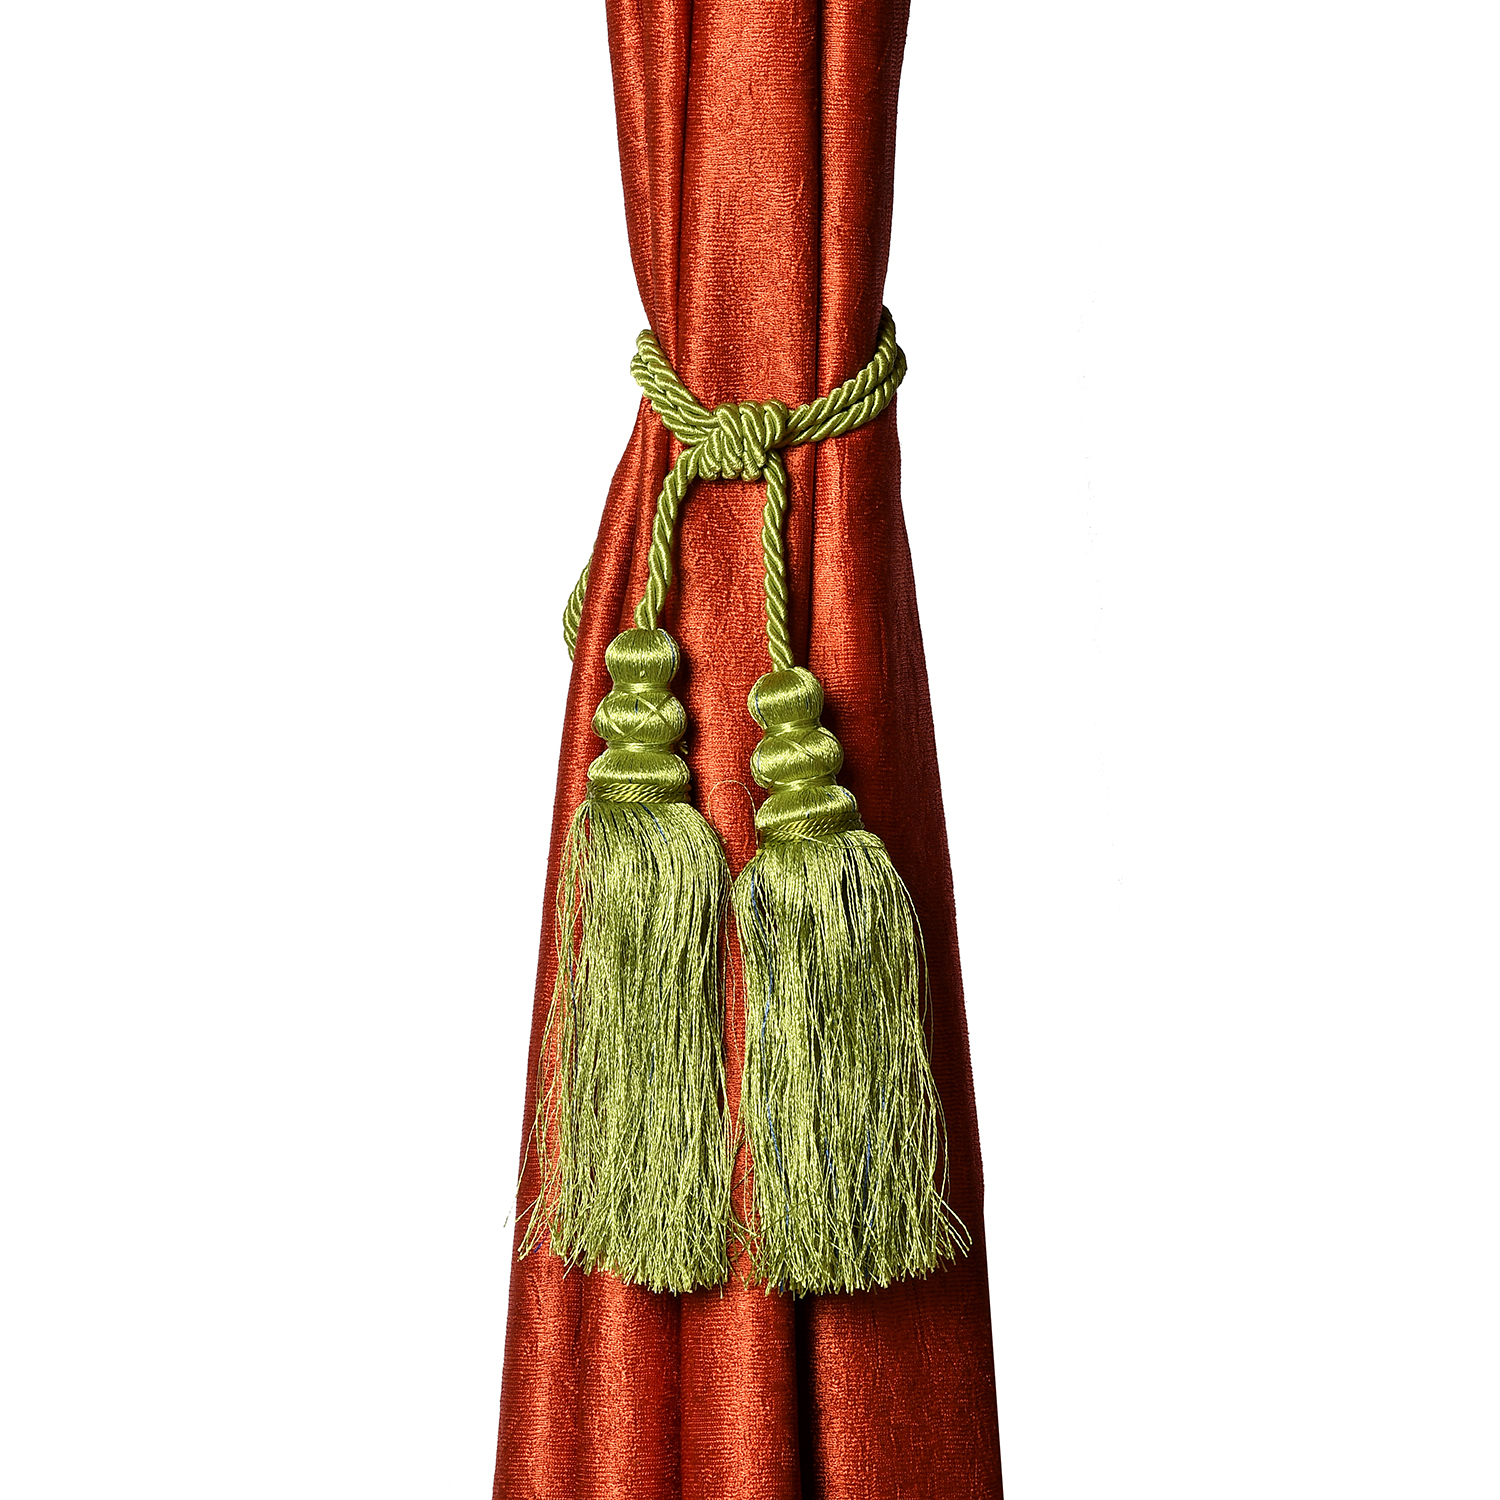 Kuber Industries Polyester 12 Pieces Curtain Tie Back Tassel Set (Green)